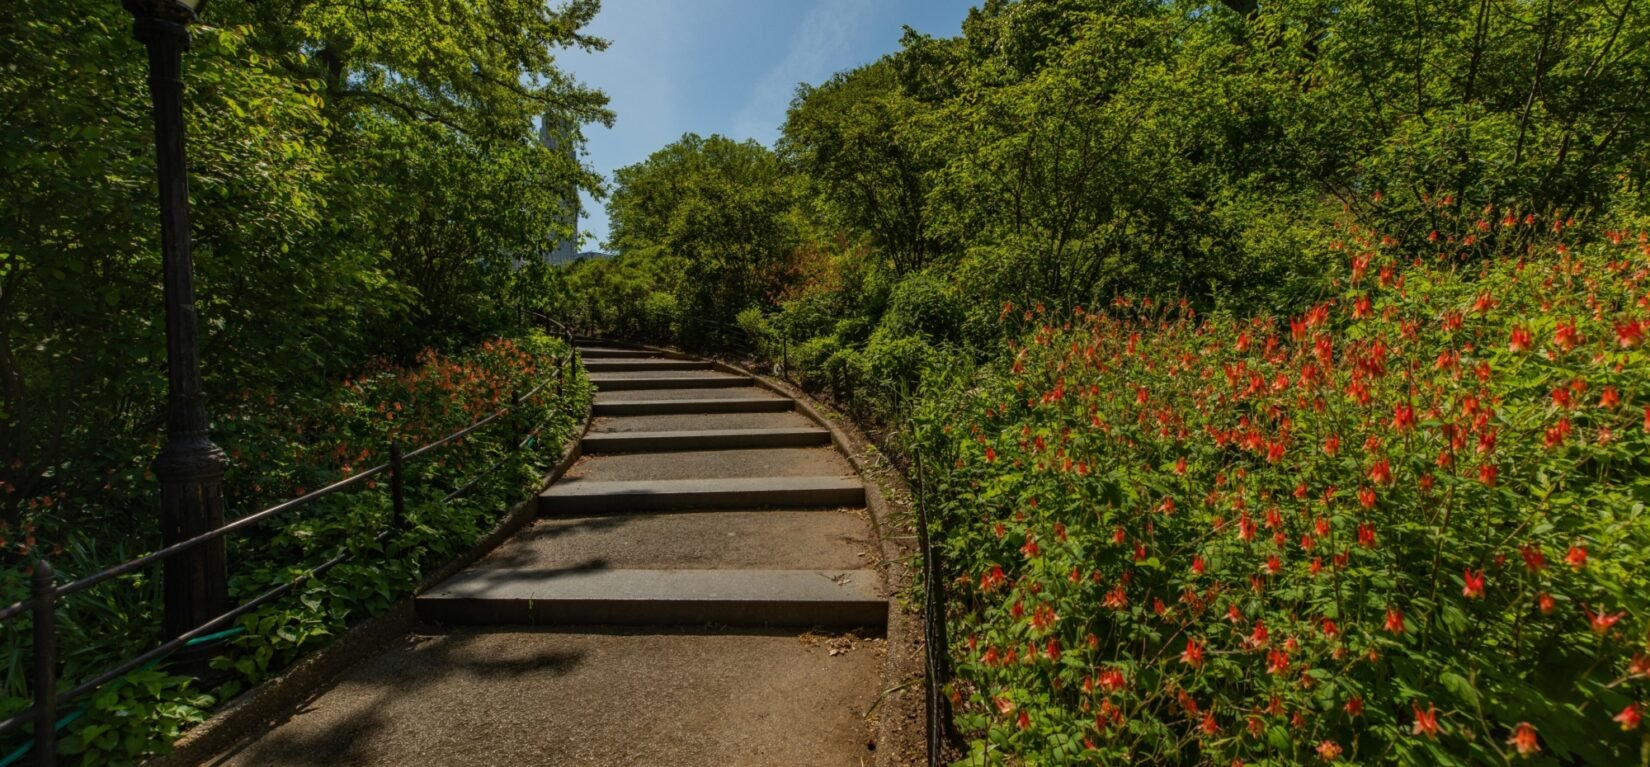 A graceful, inclined path winds through Dene Slope, surrounded by thick trees, grasses, and flowers